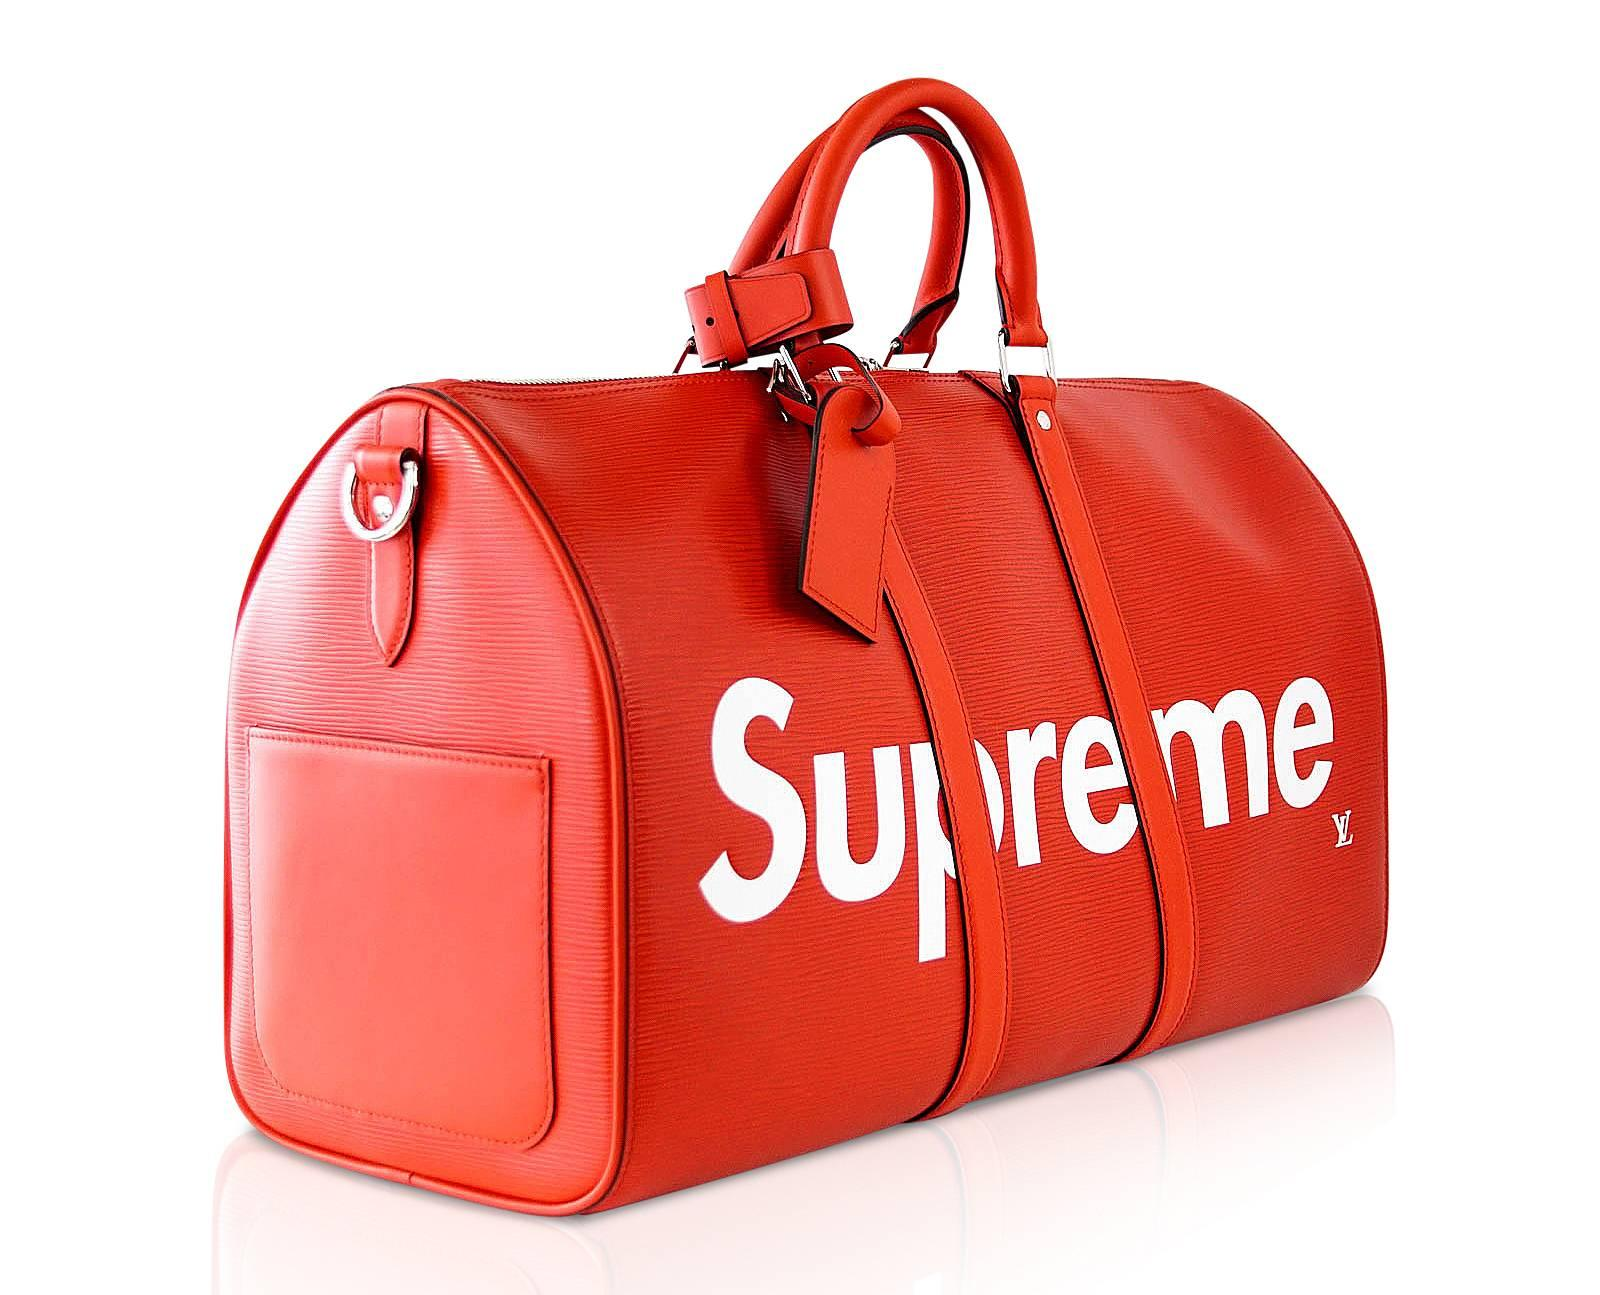 ea71f9d45abd Louis Vuitton X Supreme Red Epi Keepall Bandouliere Duffle Bag 45 For Sale  at 1stdibs